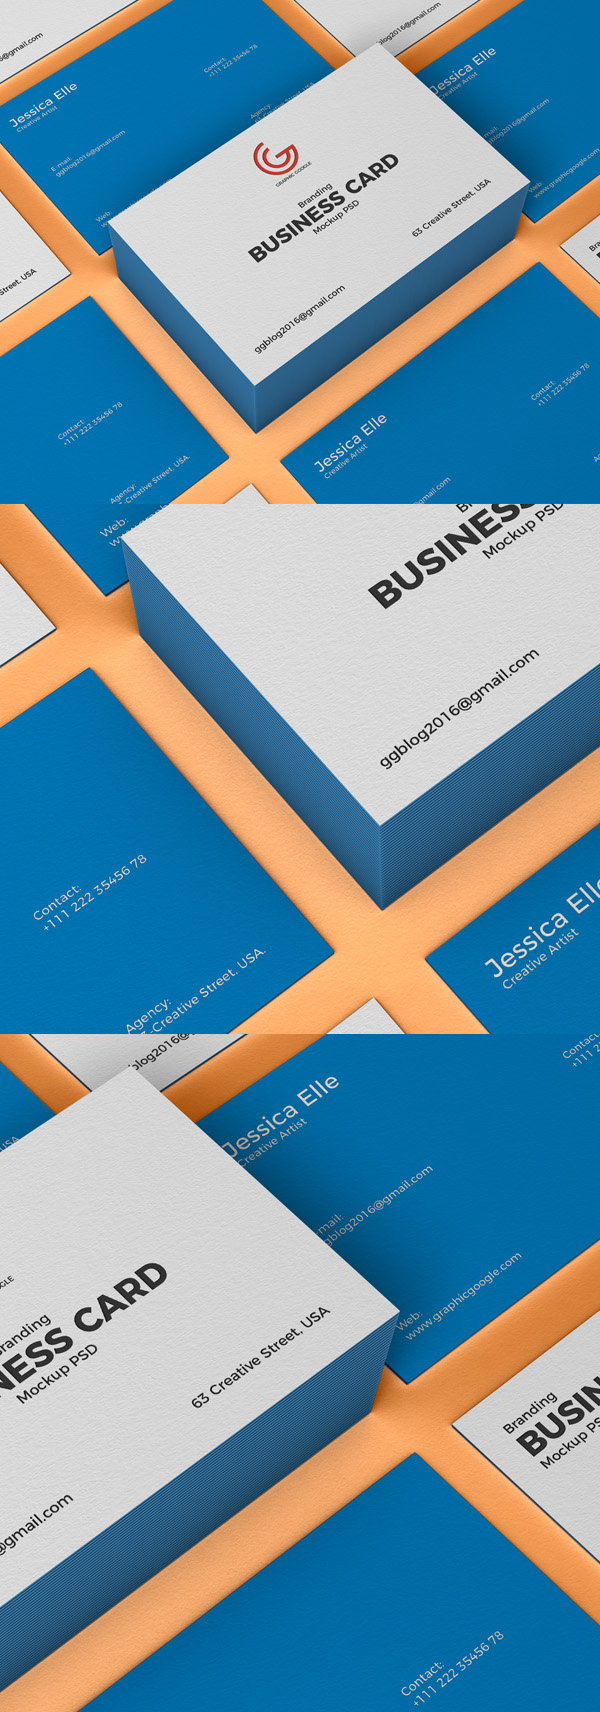 Freebies for 2019: Free Branding Business Card Mockup